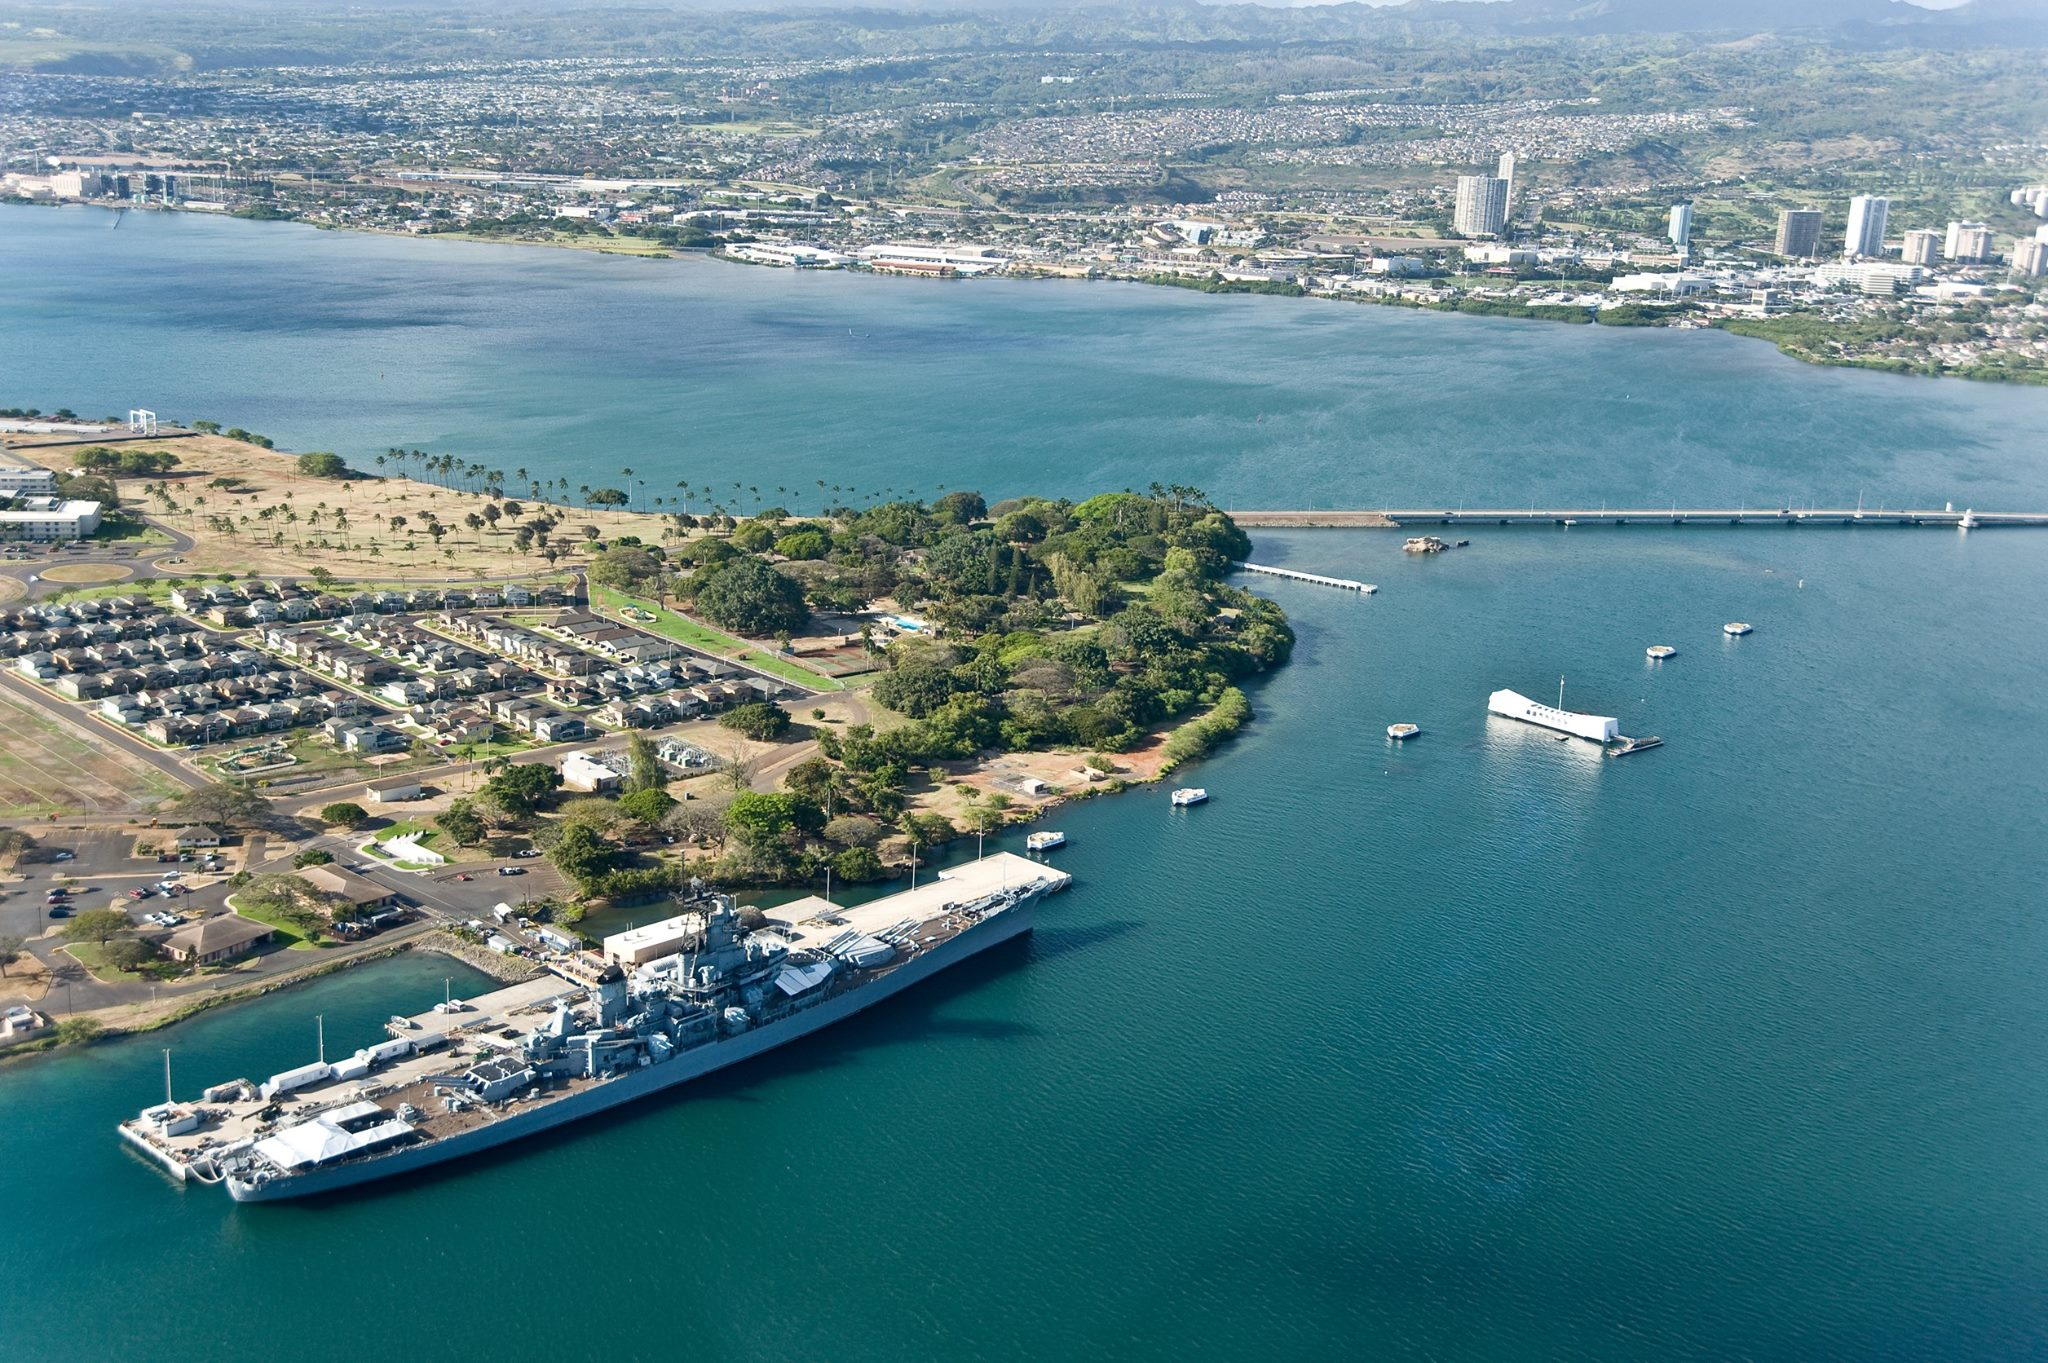 Pearl Harbor Sites - USS Missouri & USS Arizona Memorial